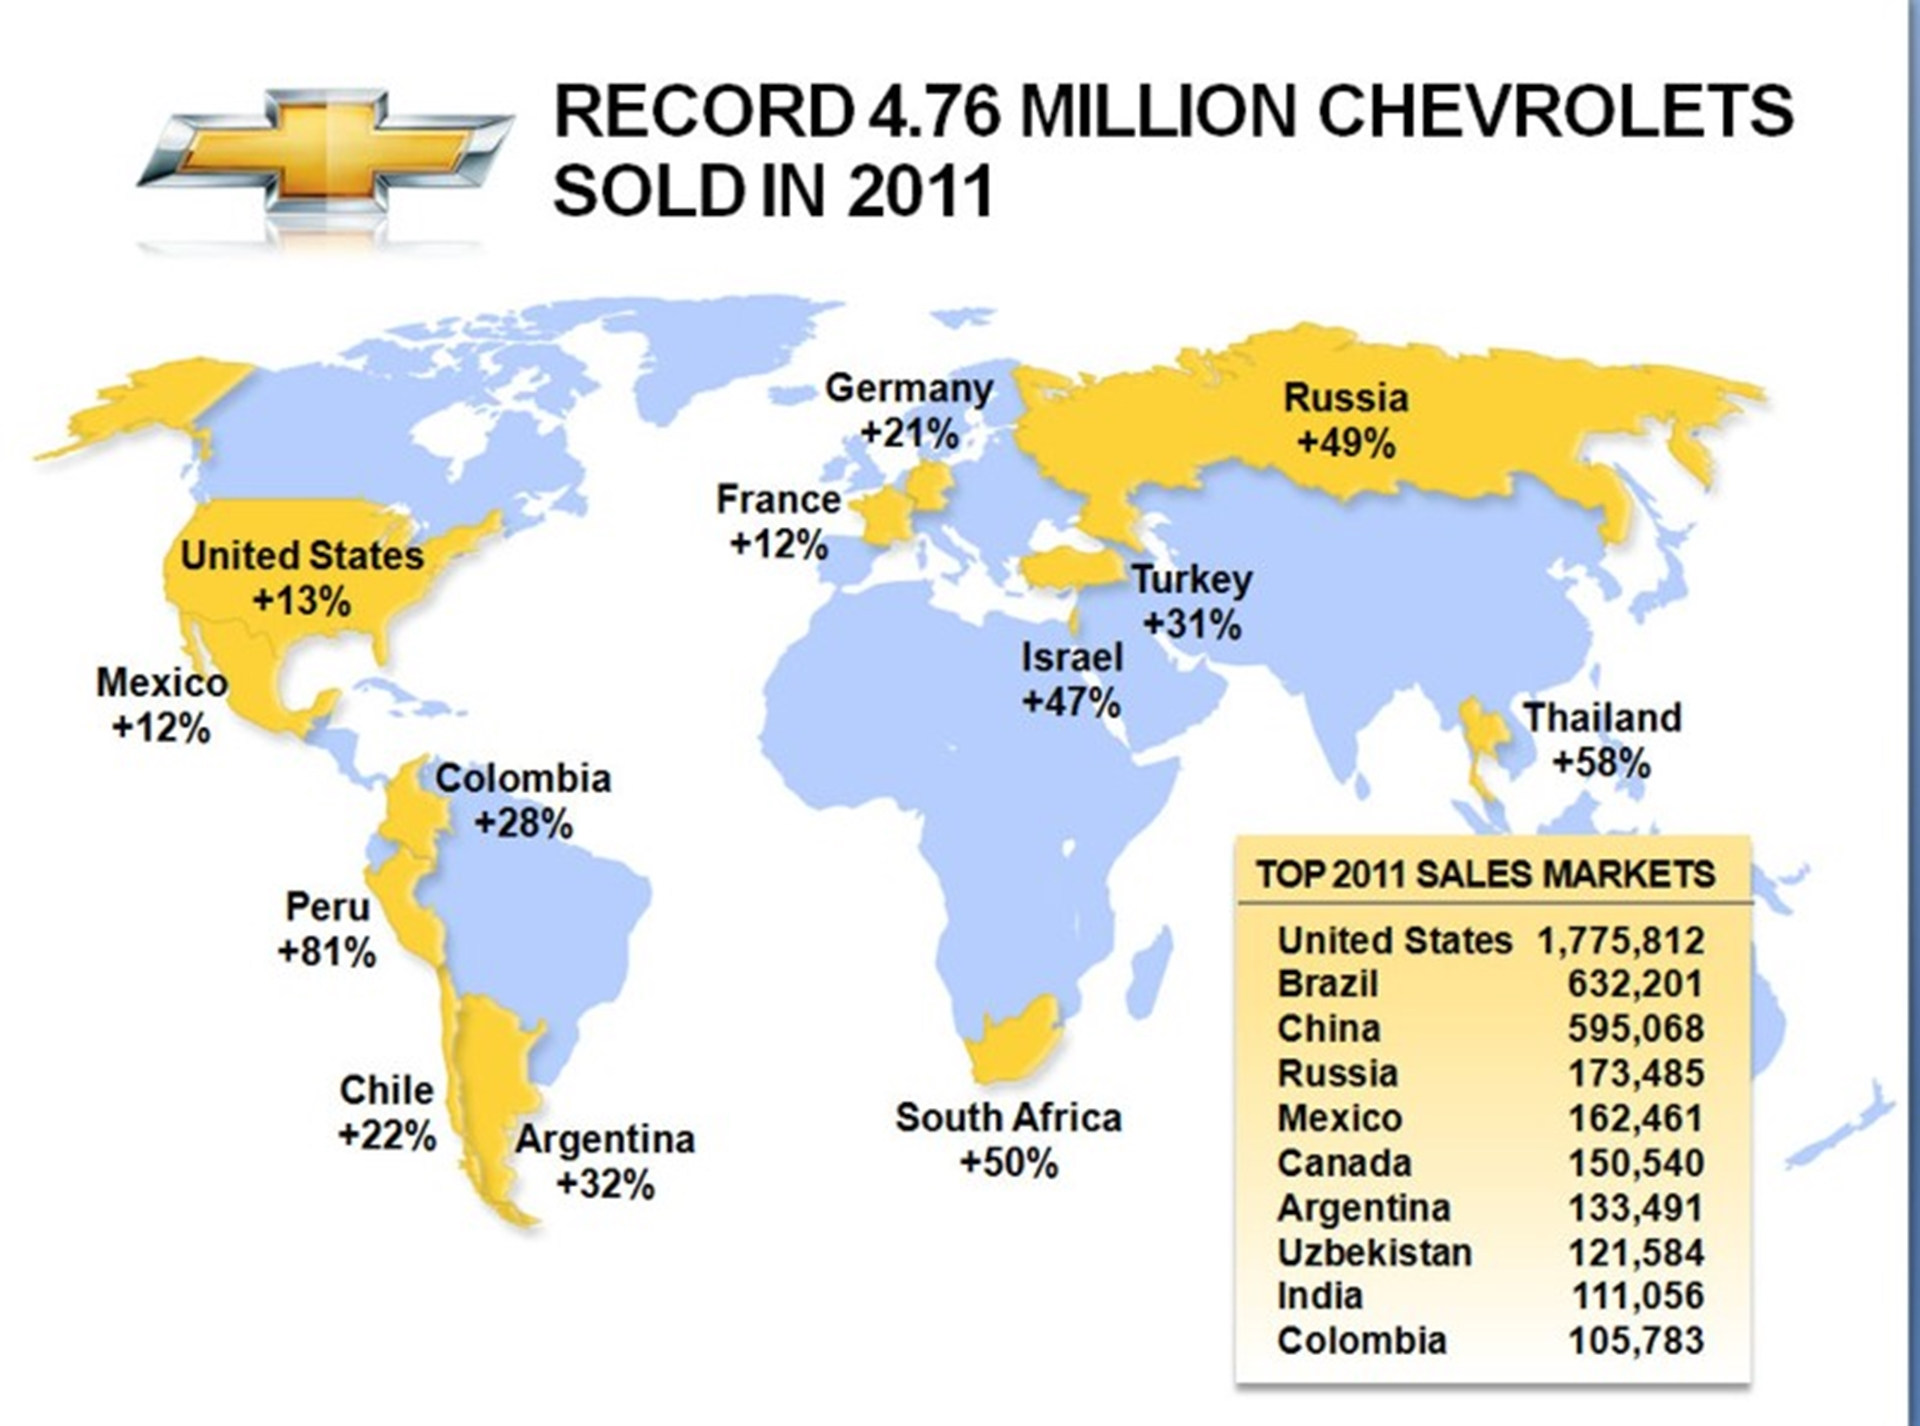 Chevrolet Global Sales 2011